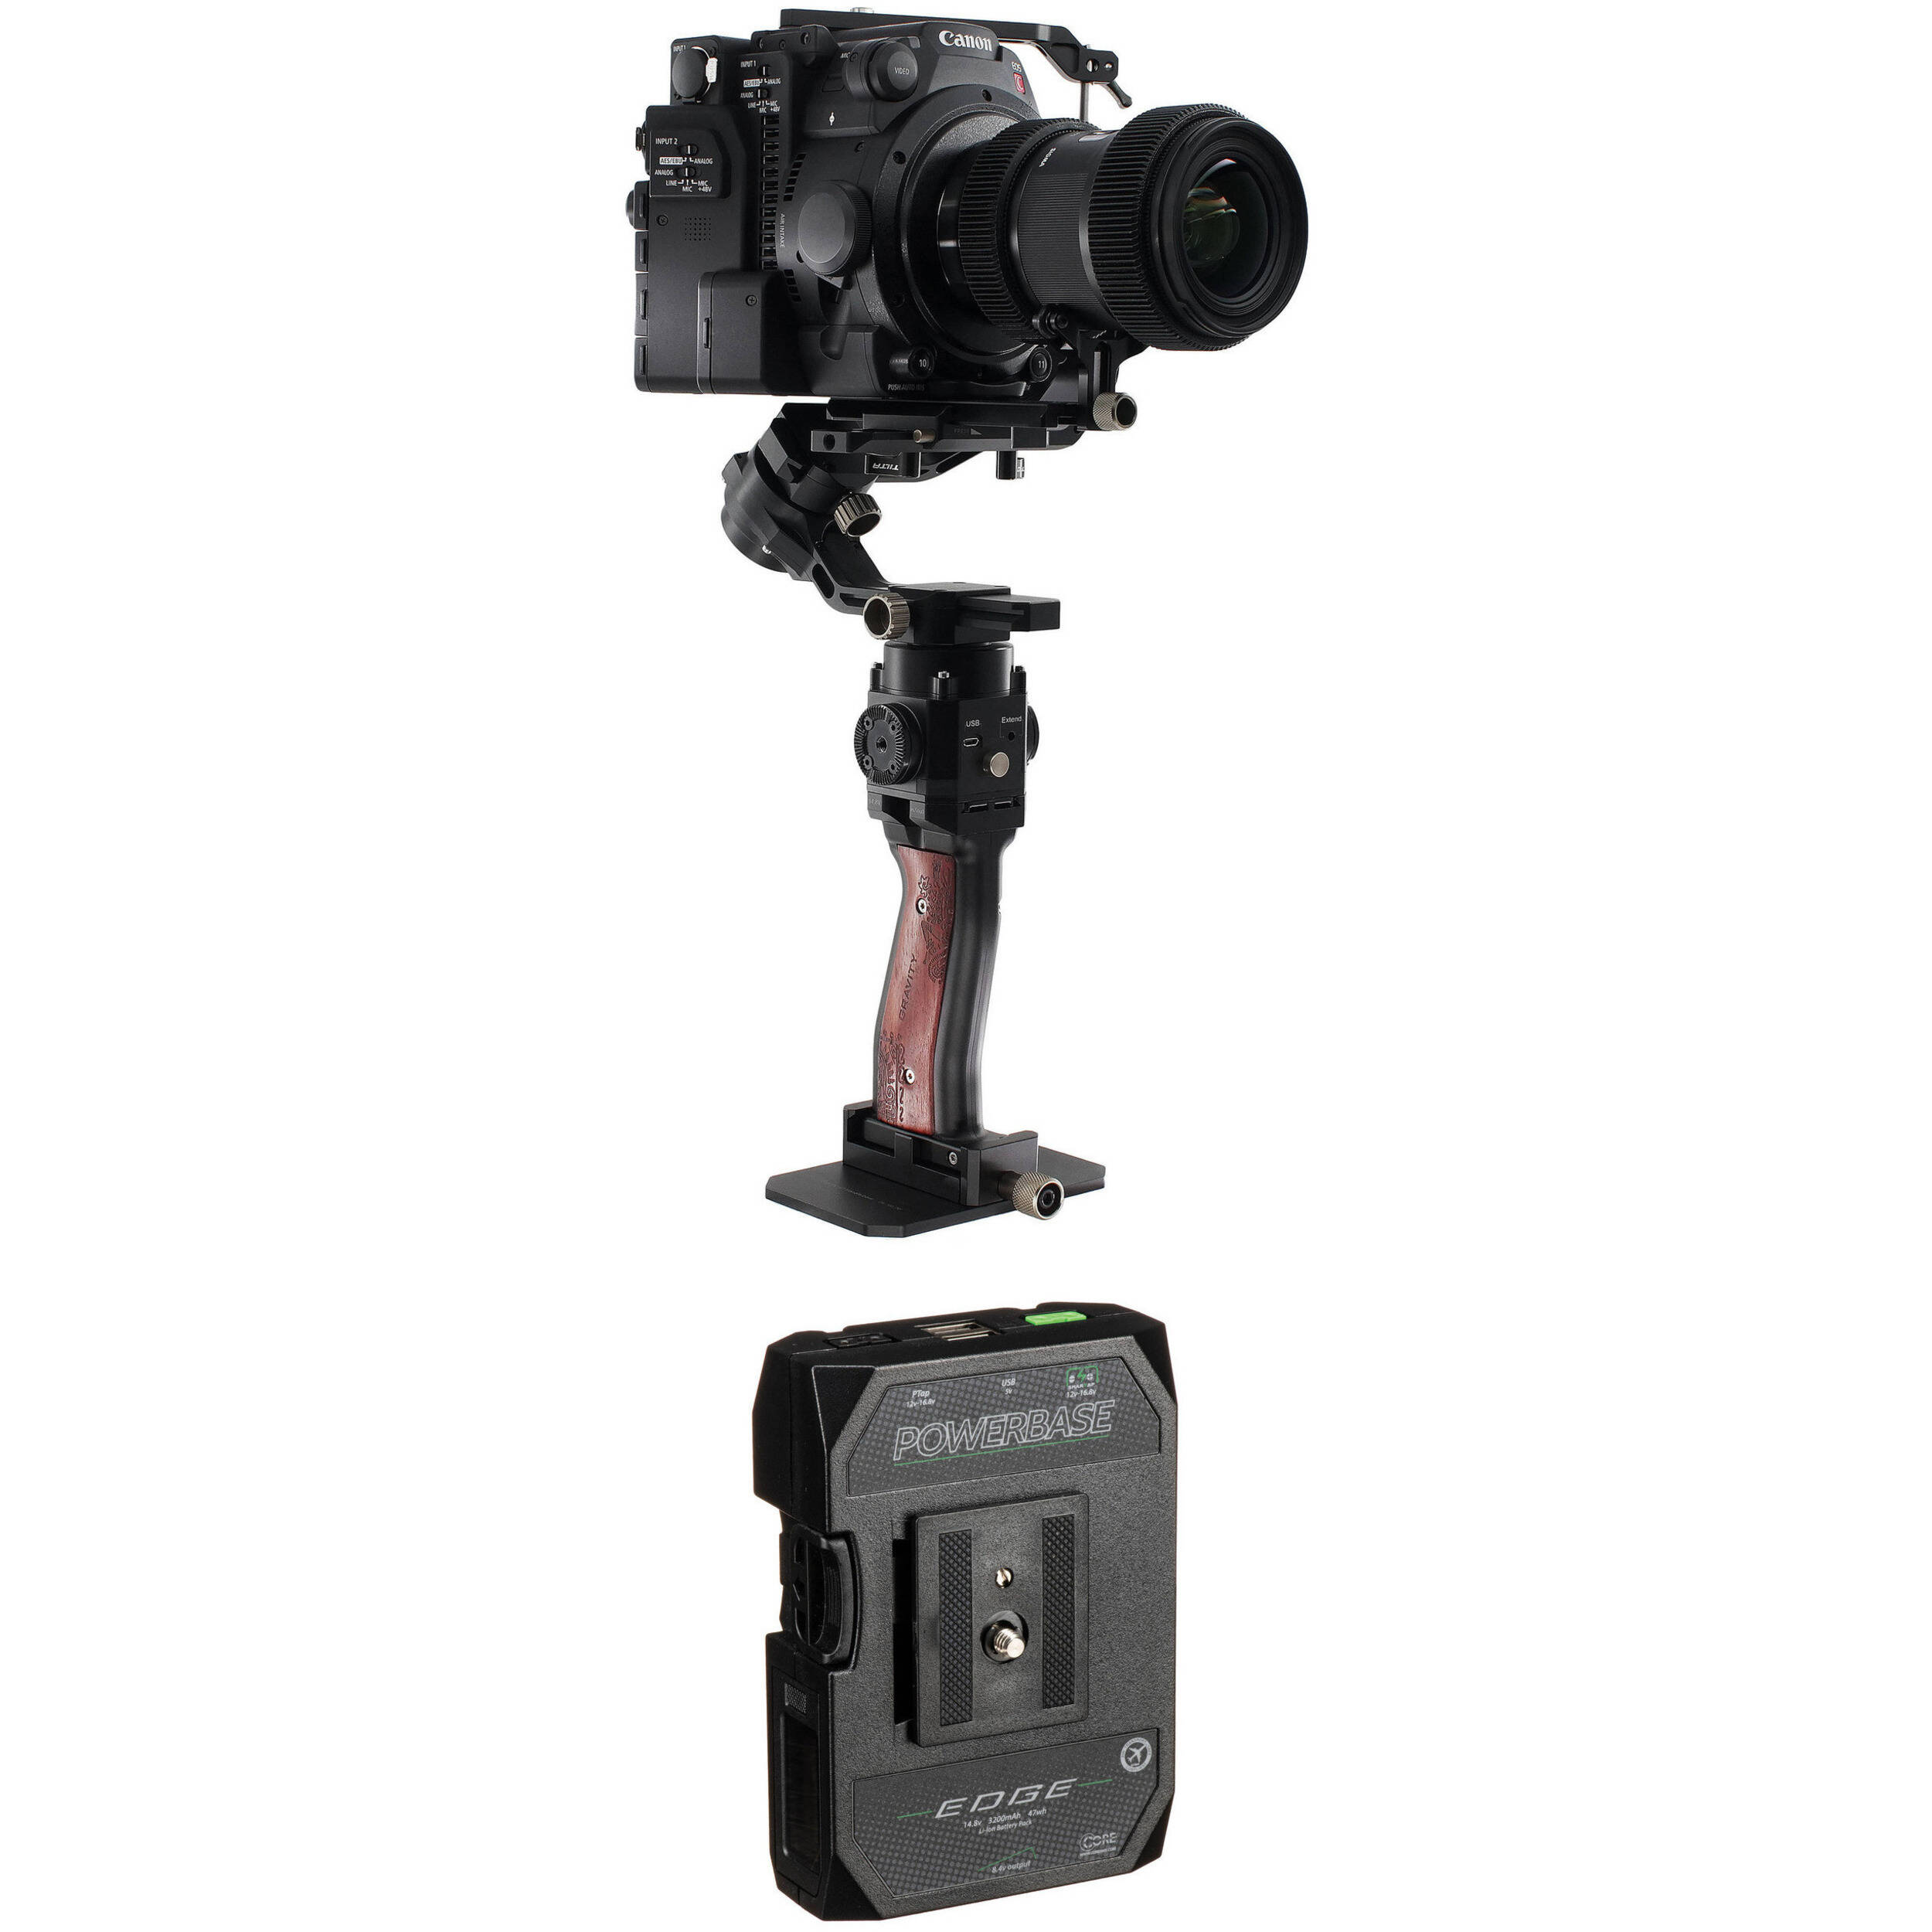 Vidpro PG-6X Rechargeable Battery Hand Grip with Folding Extension Bracket for GoPro Hero Action Cameras Camcorders and Smart Phones 7 5X Extended Run Works with GoPro Max and Hero 8 5 etc. 6